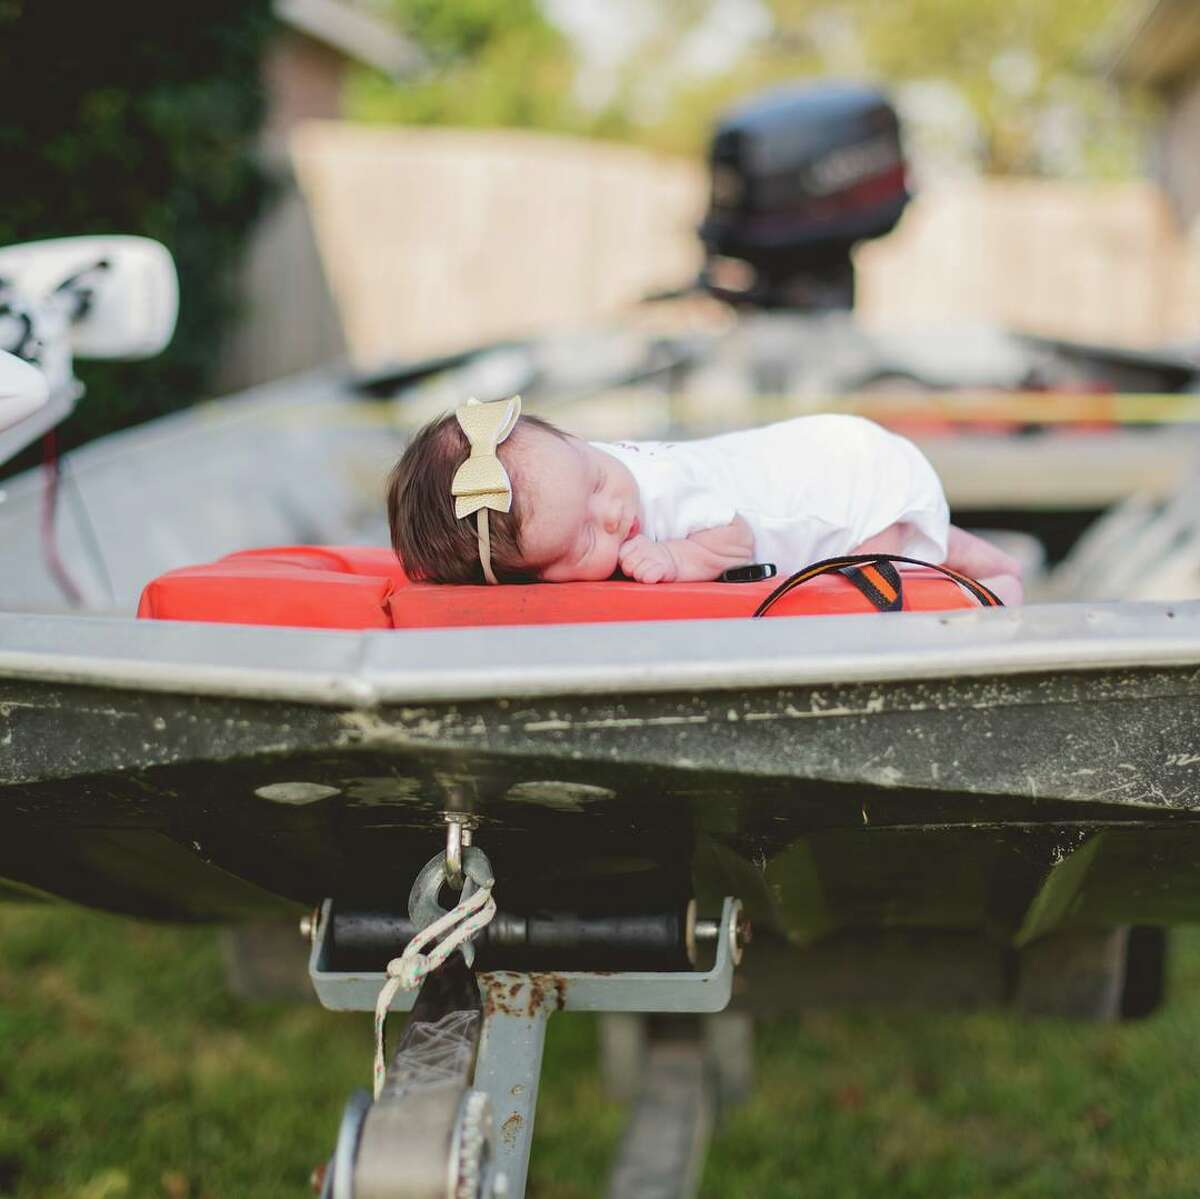 Baby Hope of Orange, Texas, had her newborn photos taken in a Cajun Navy boat that rescued Hope and her family from Harvey floodwaters on Aug. 30, 2017.PHOTOS: Dramatic rescues during Hurricane Harvey